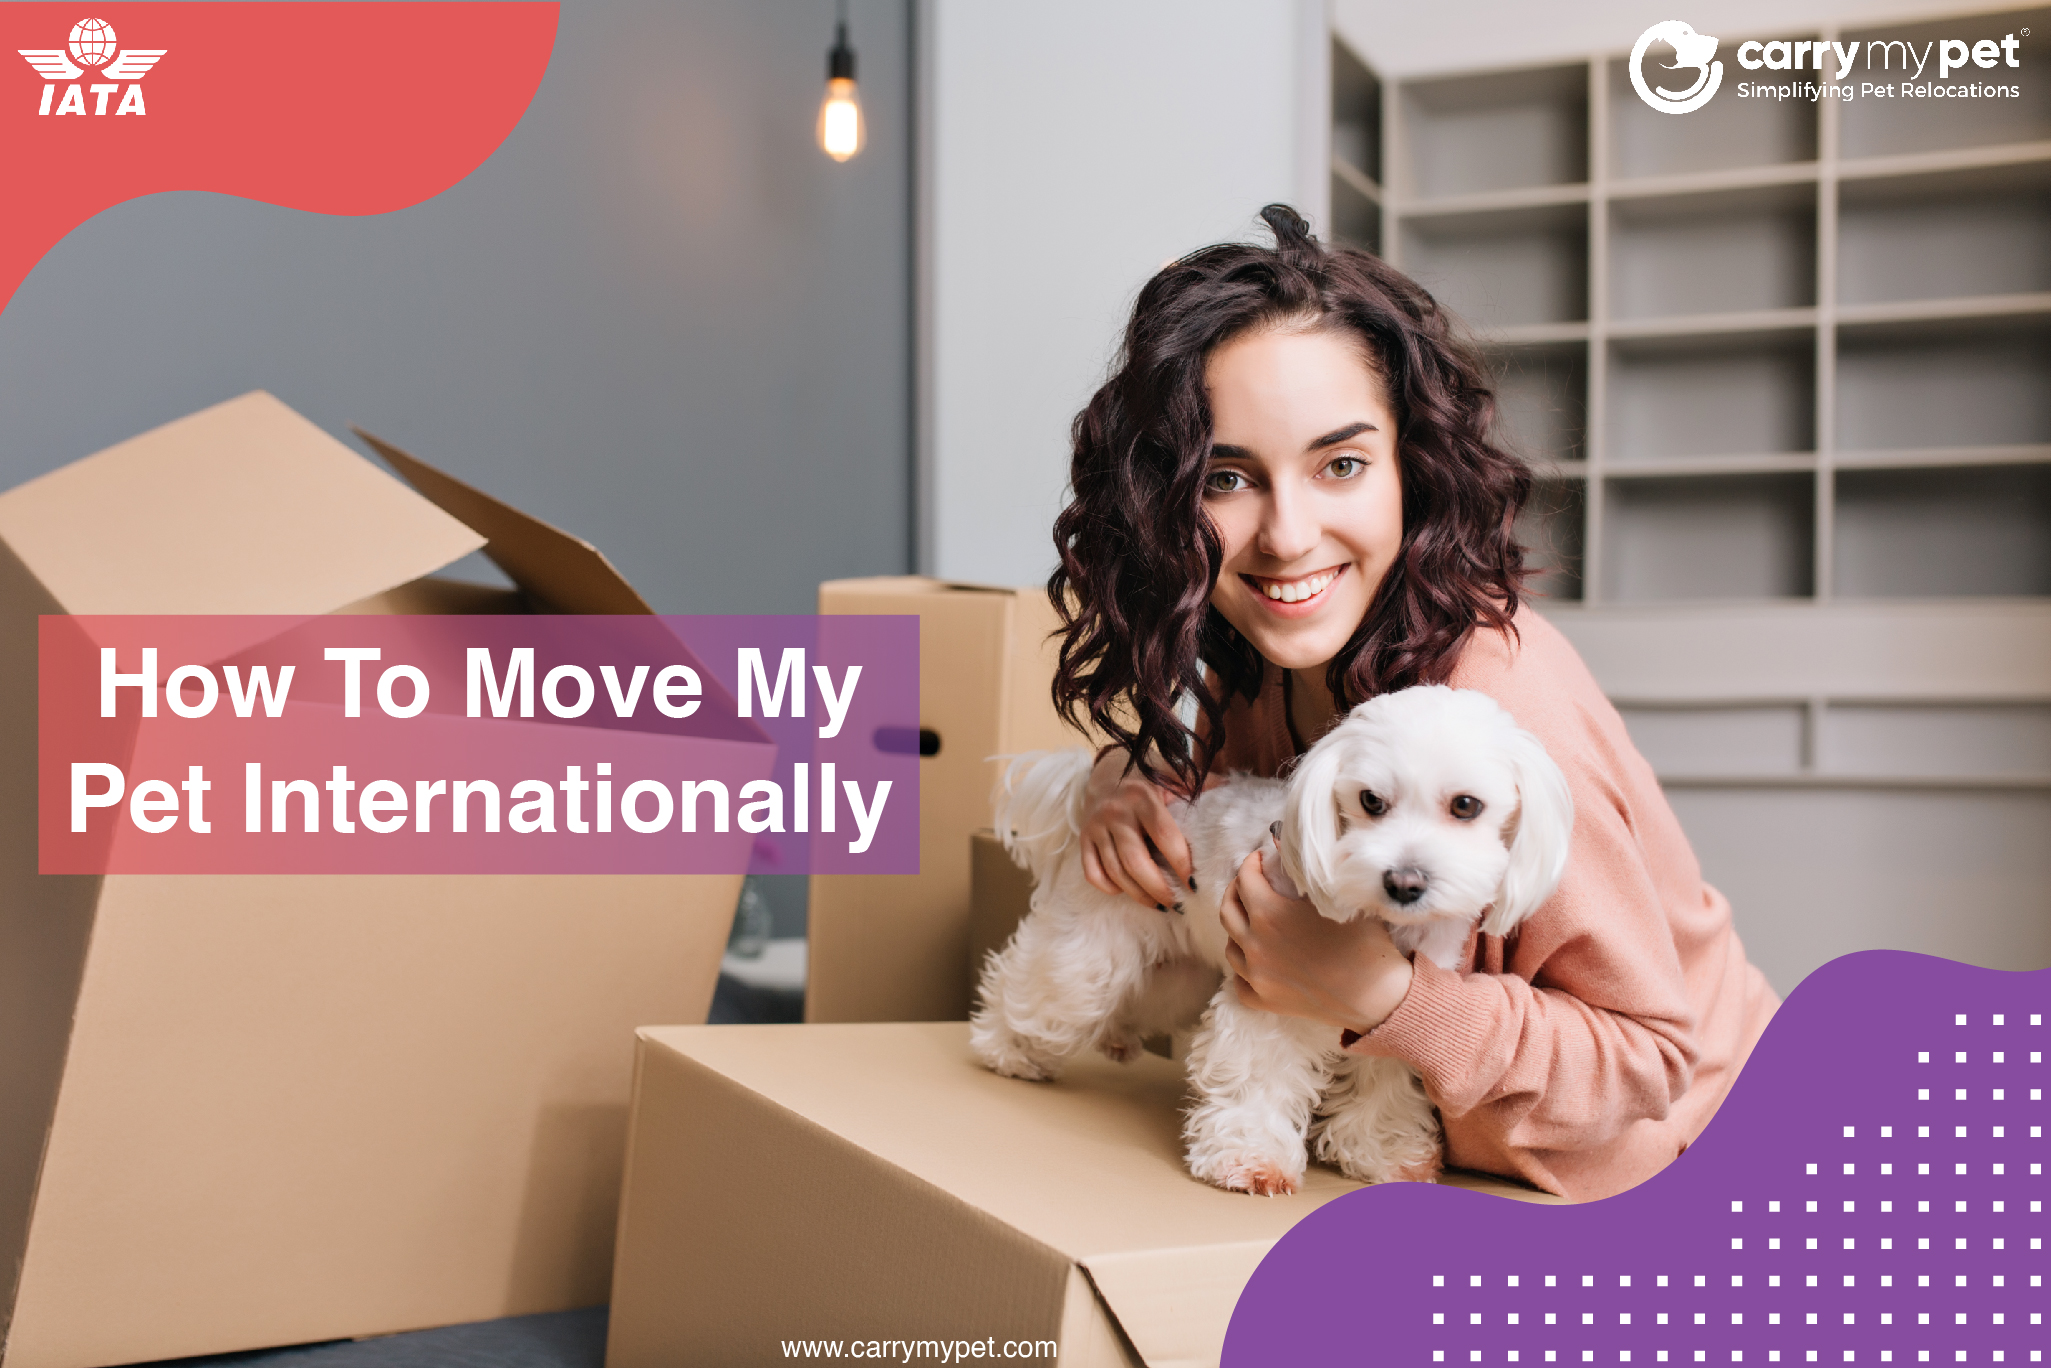 How to Deliver Pets Internationally